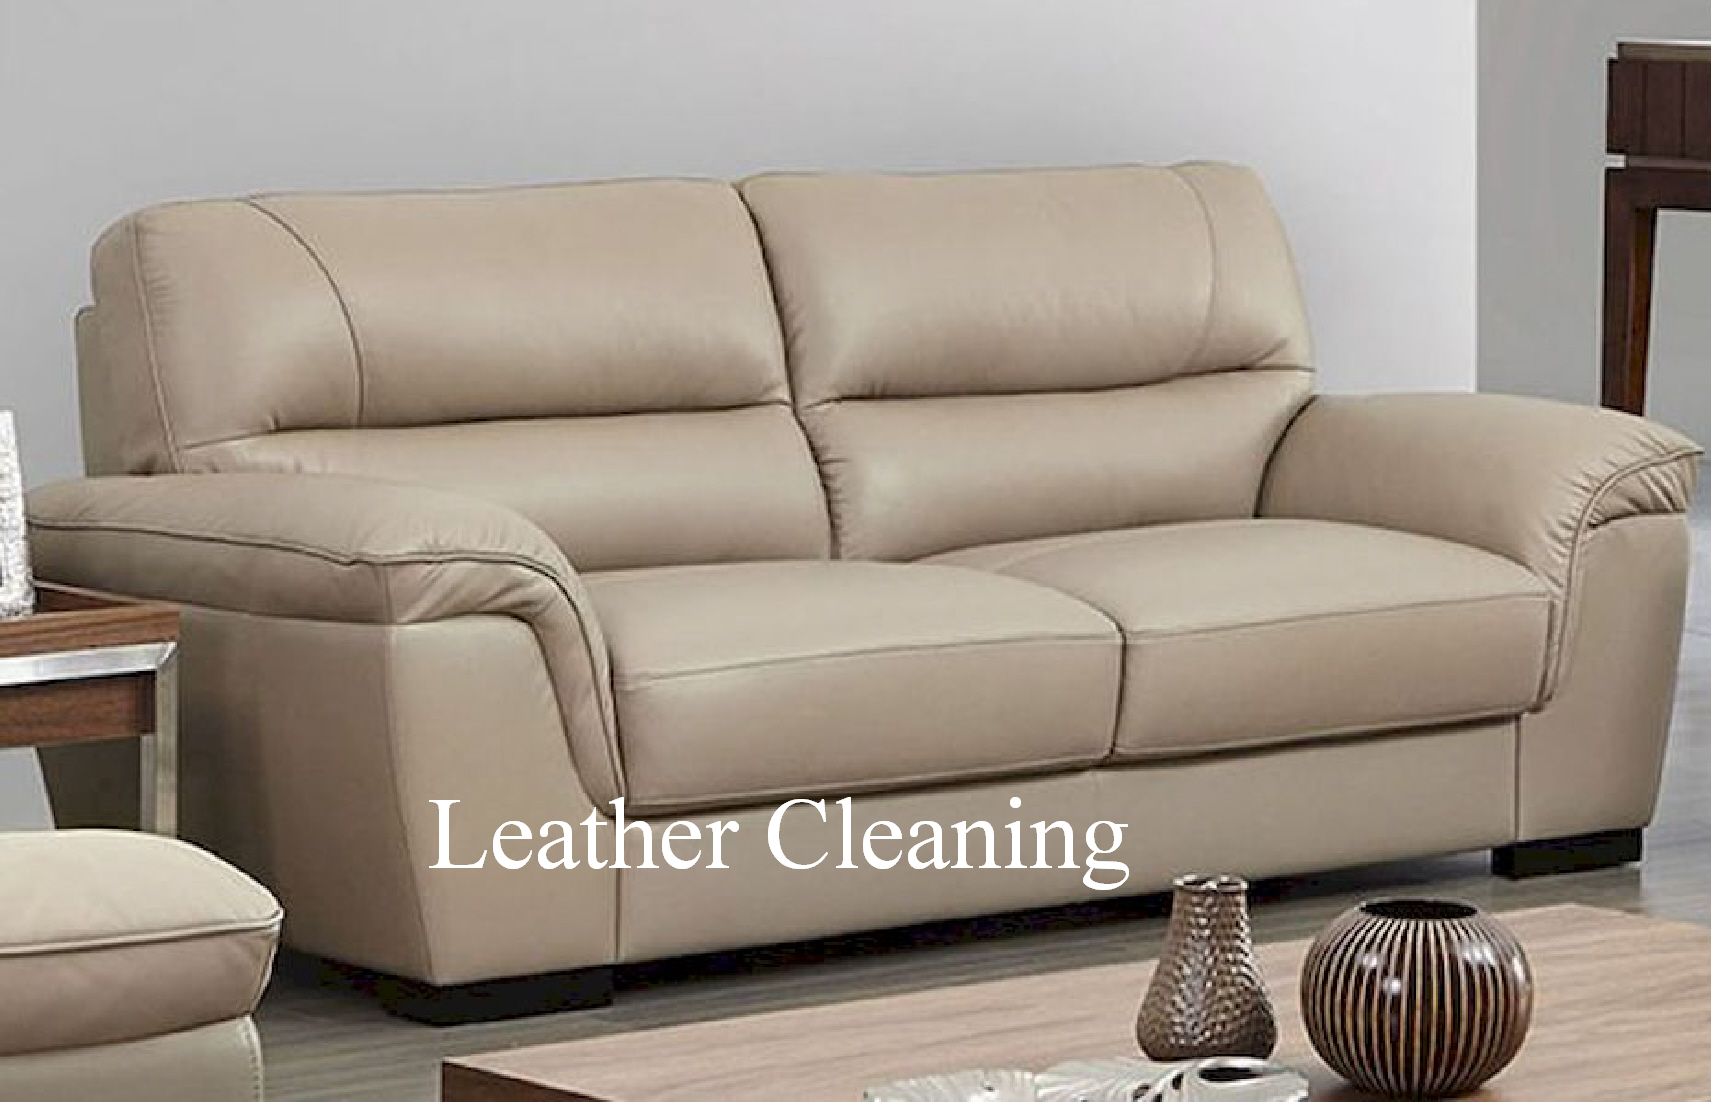 Leather cleaning service Knutsford